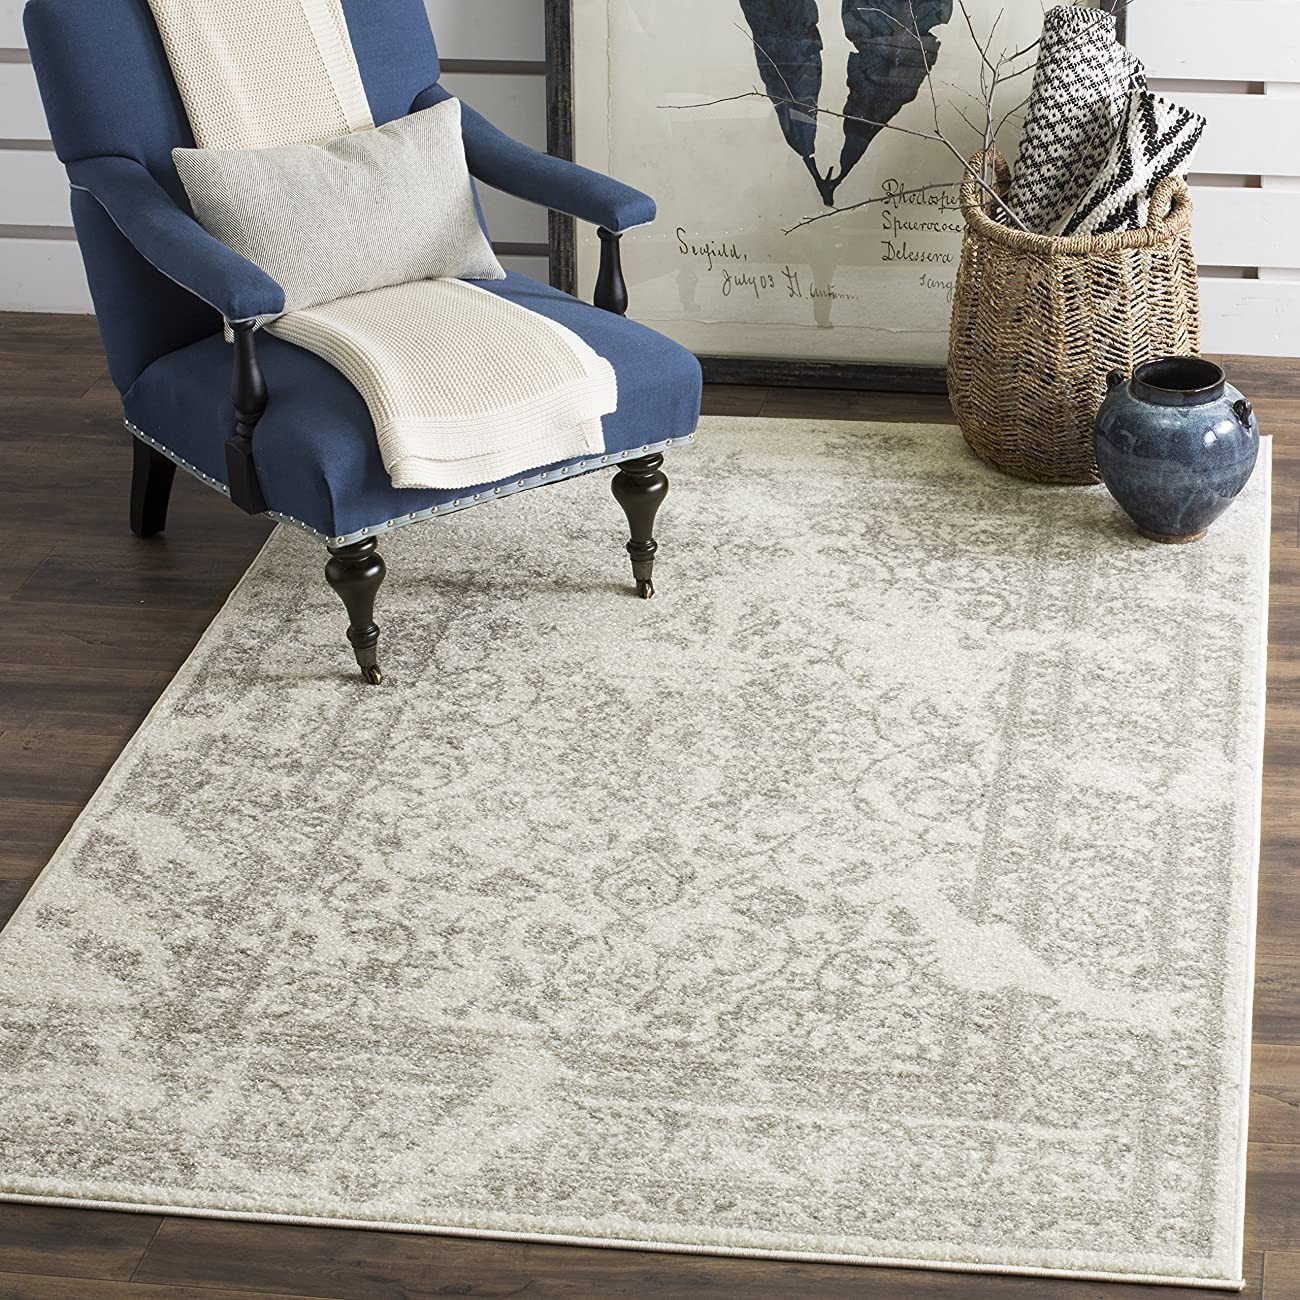 Safavieh Adirondack Collection ADR101B Ivory and Silver Oriental Vintage Area Rug (8' x 10') 0